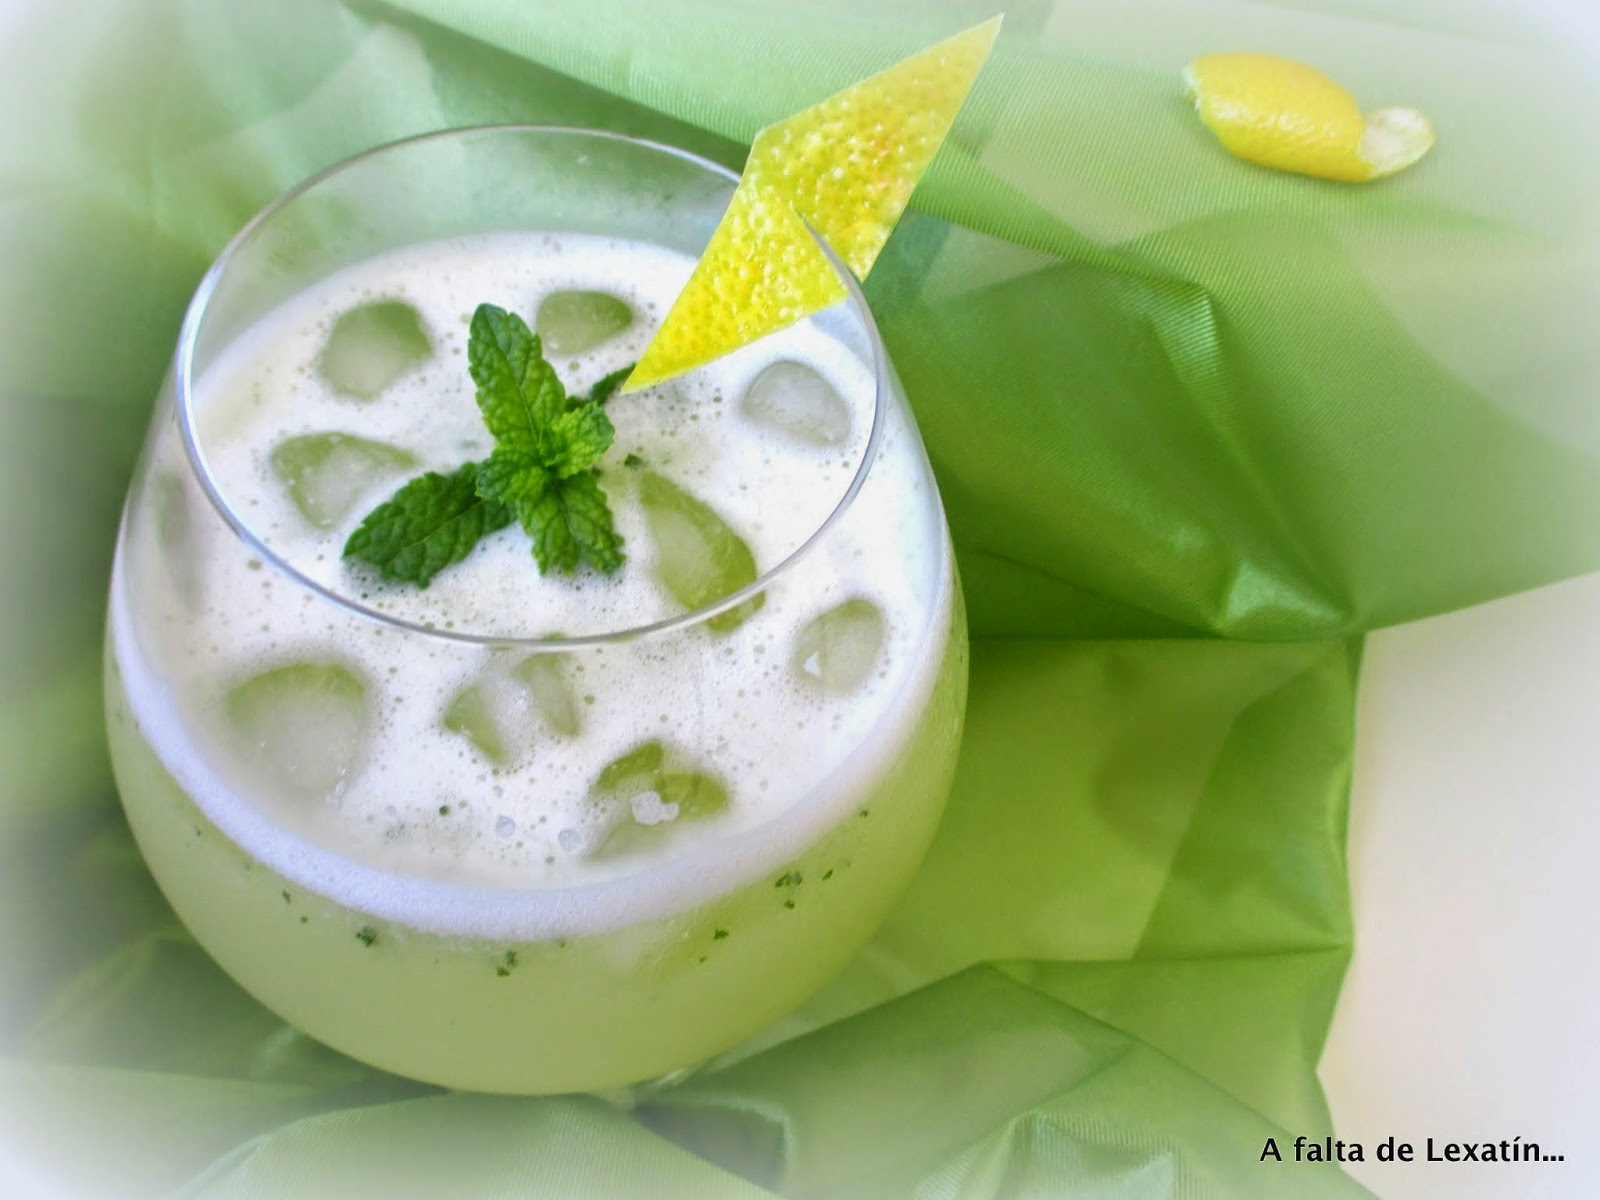 Limonada con menta // Lemon and mint juice